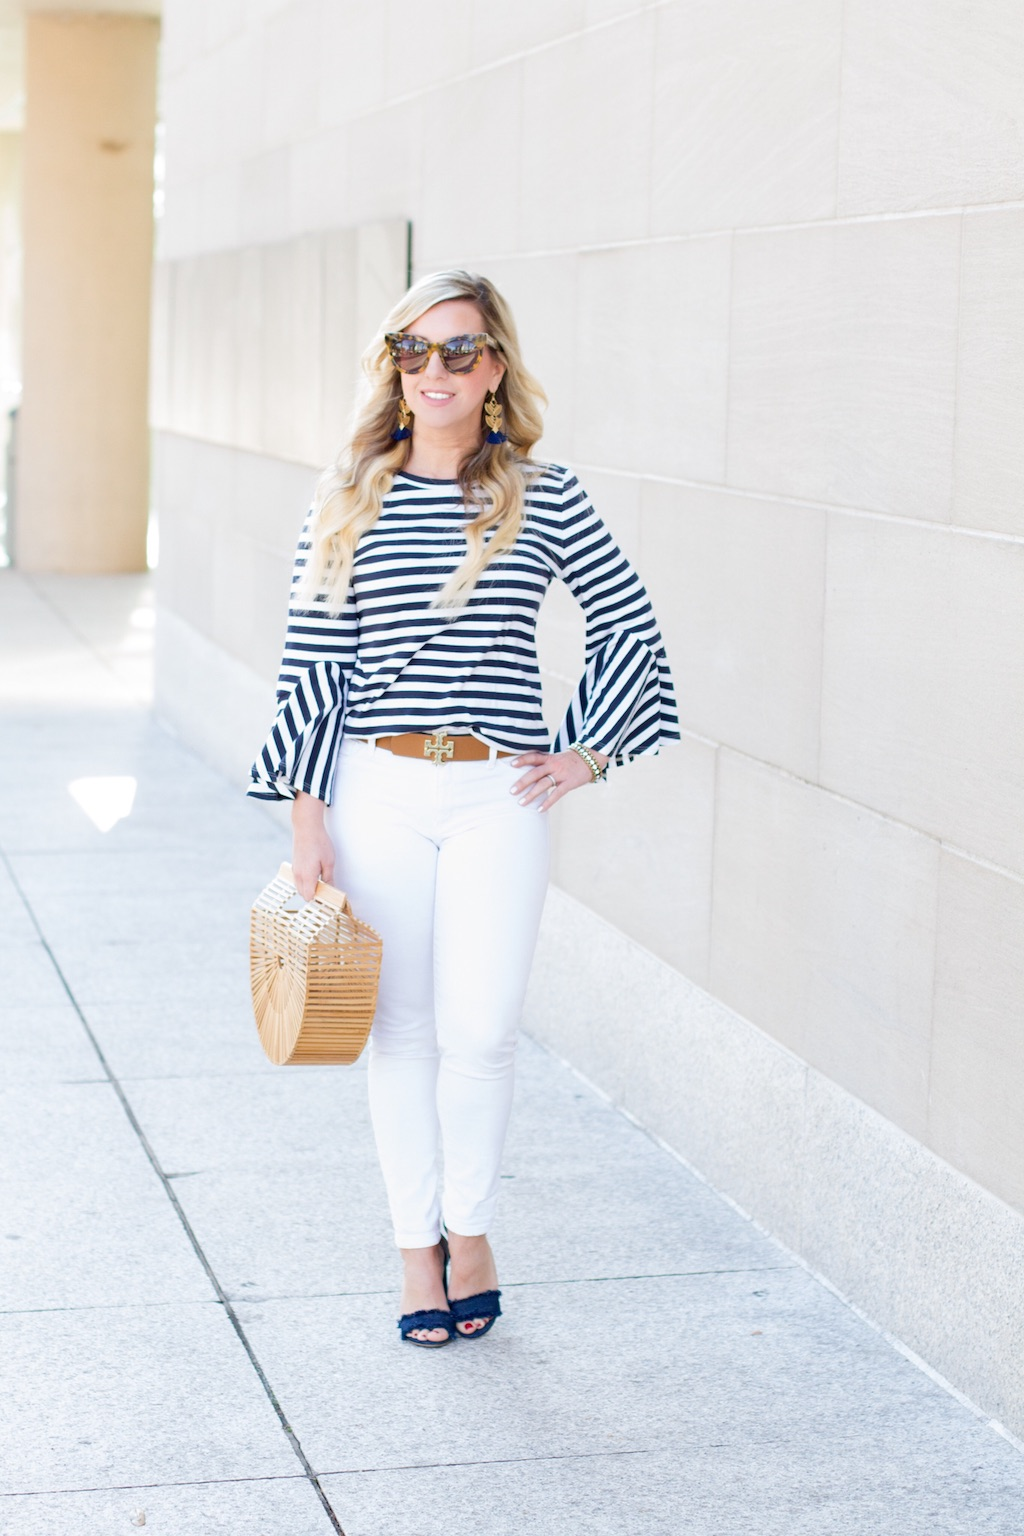 Striped Cuff Bell Sleeves | Spring Look | The Darling Petite Diva